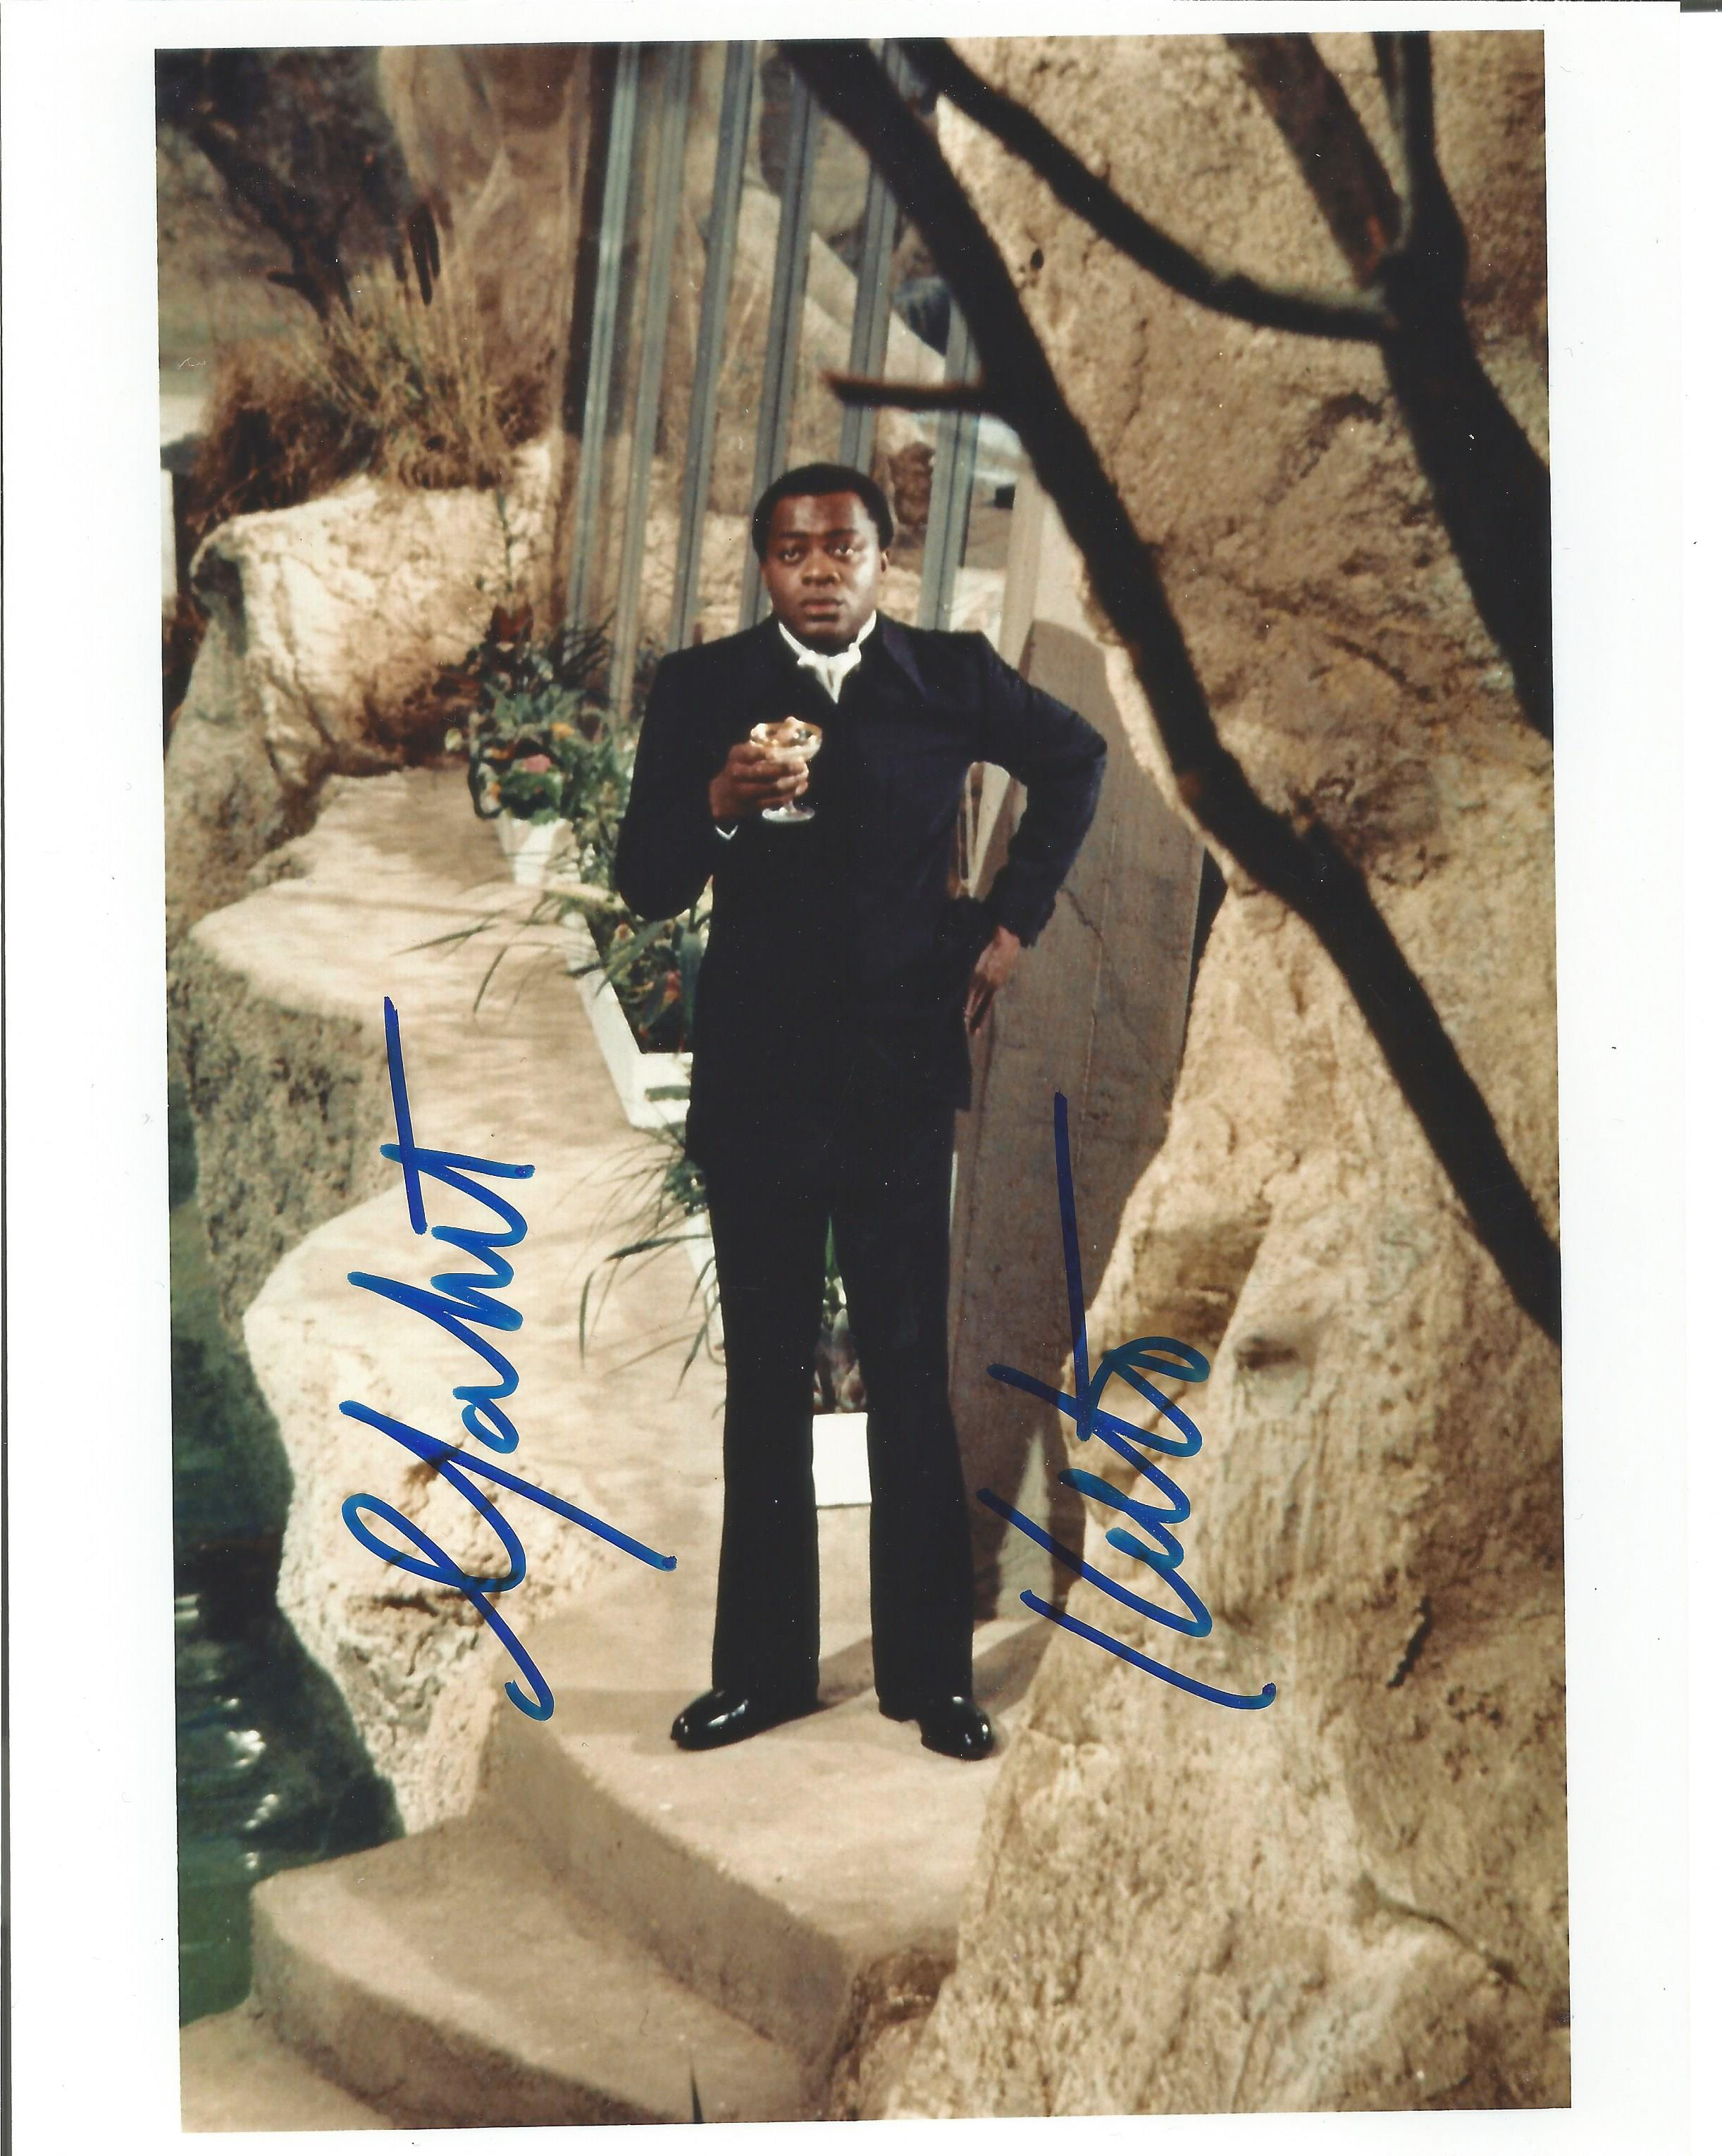 Yaphet Kotto signed 10x8 colour photograph taken during his role as Dr Kananga, Mr Big during Live